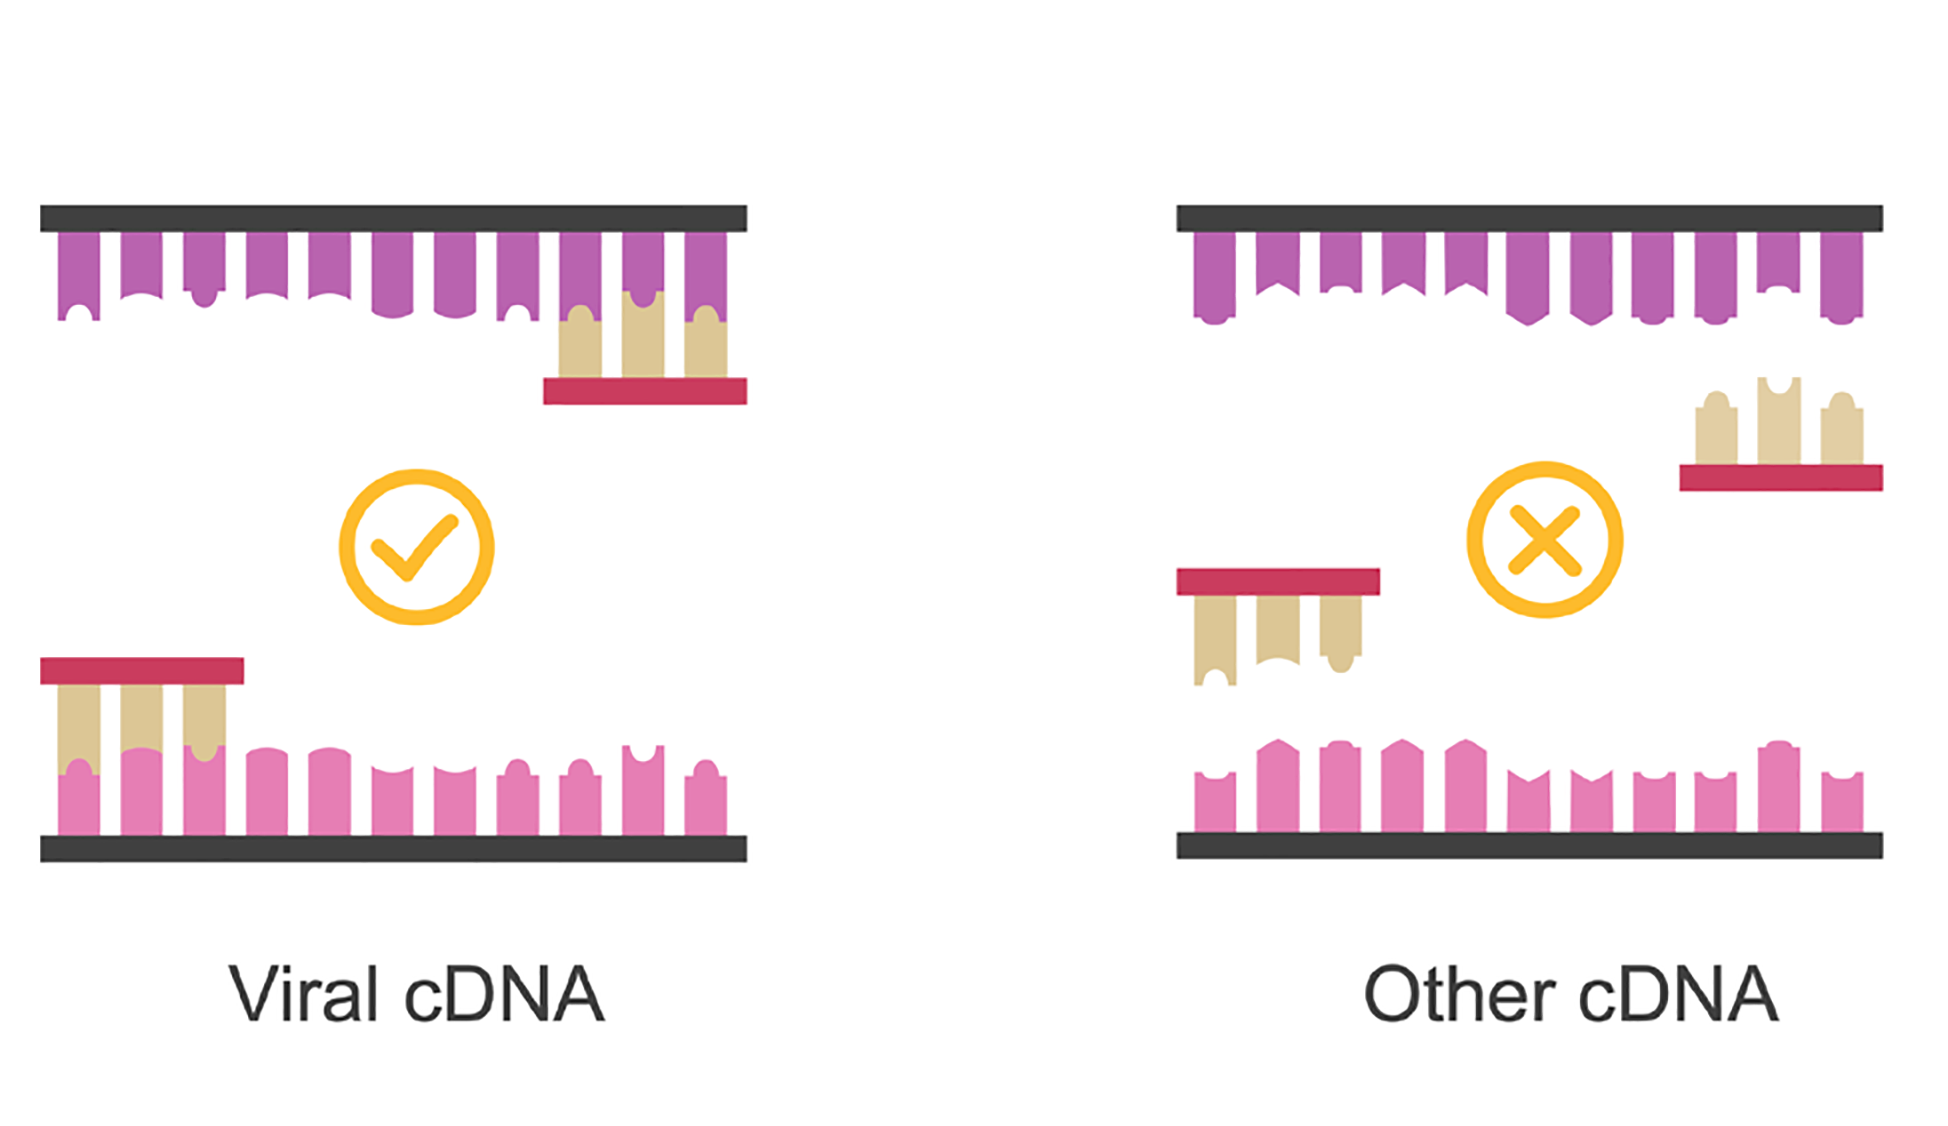 Viral cDNA with primers bound. Other cDNA with no binding of primers. Illustration.